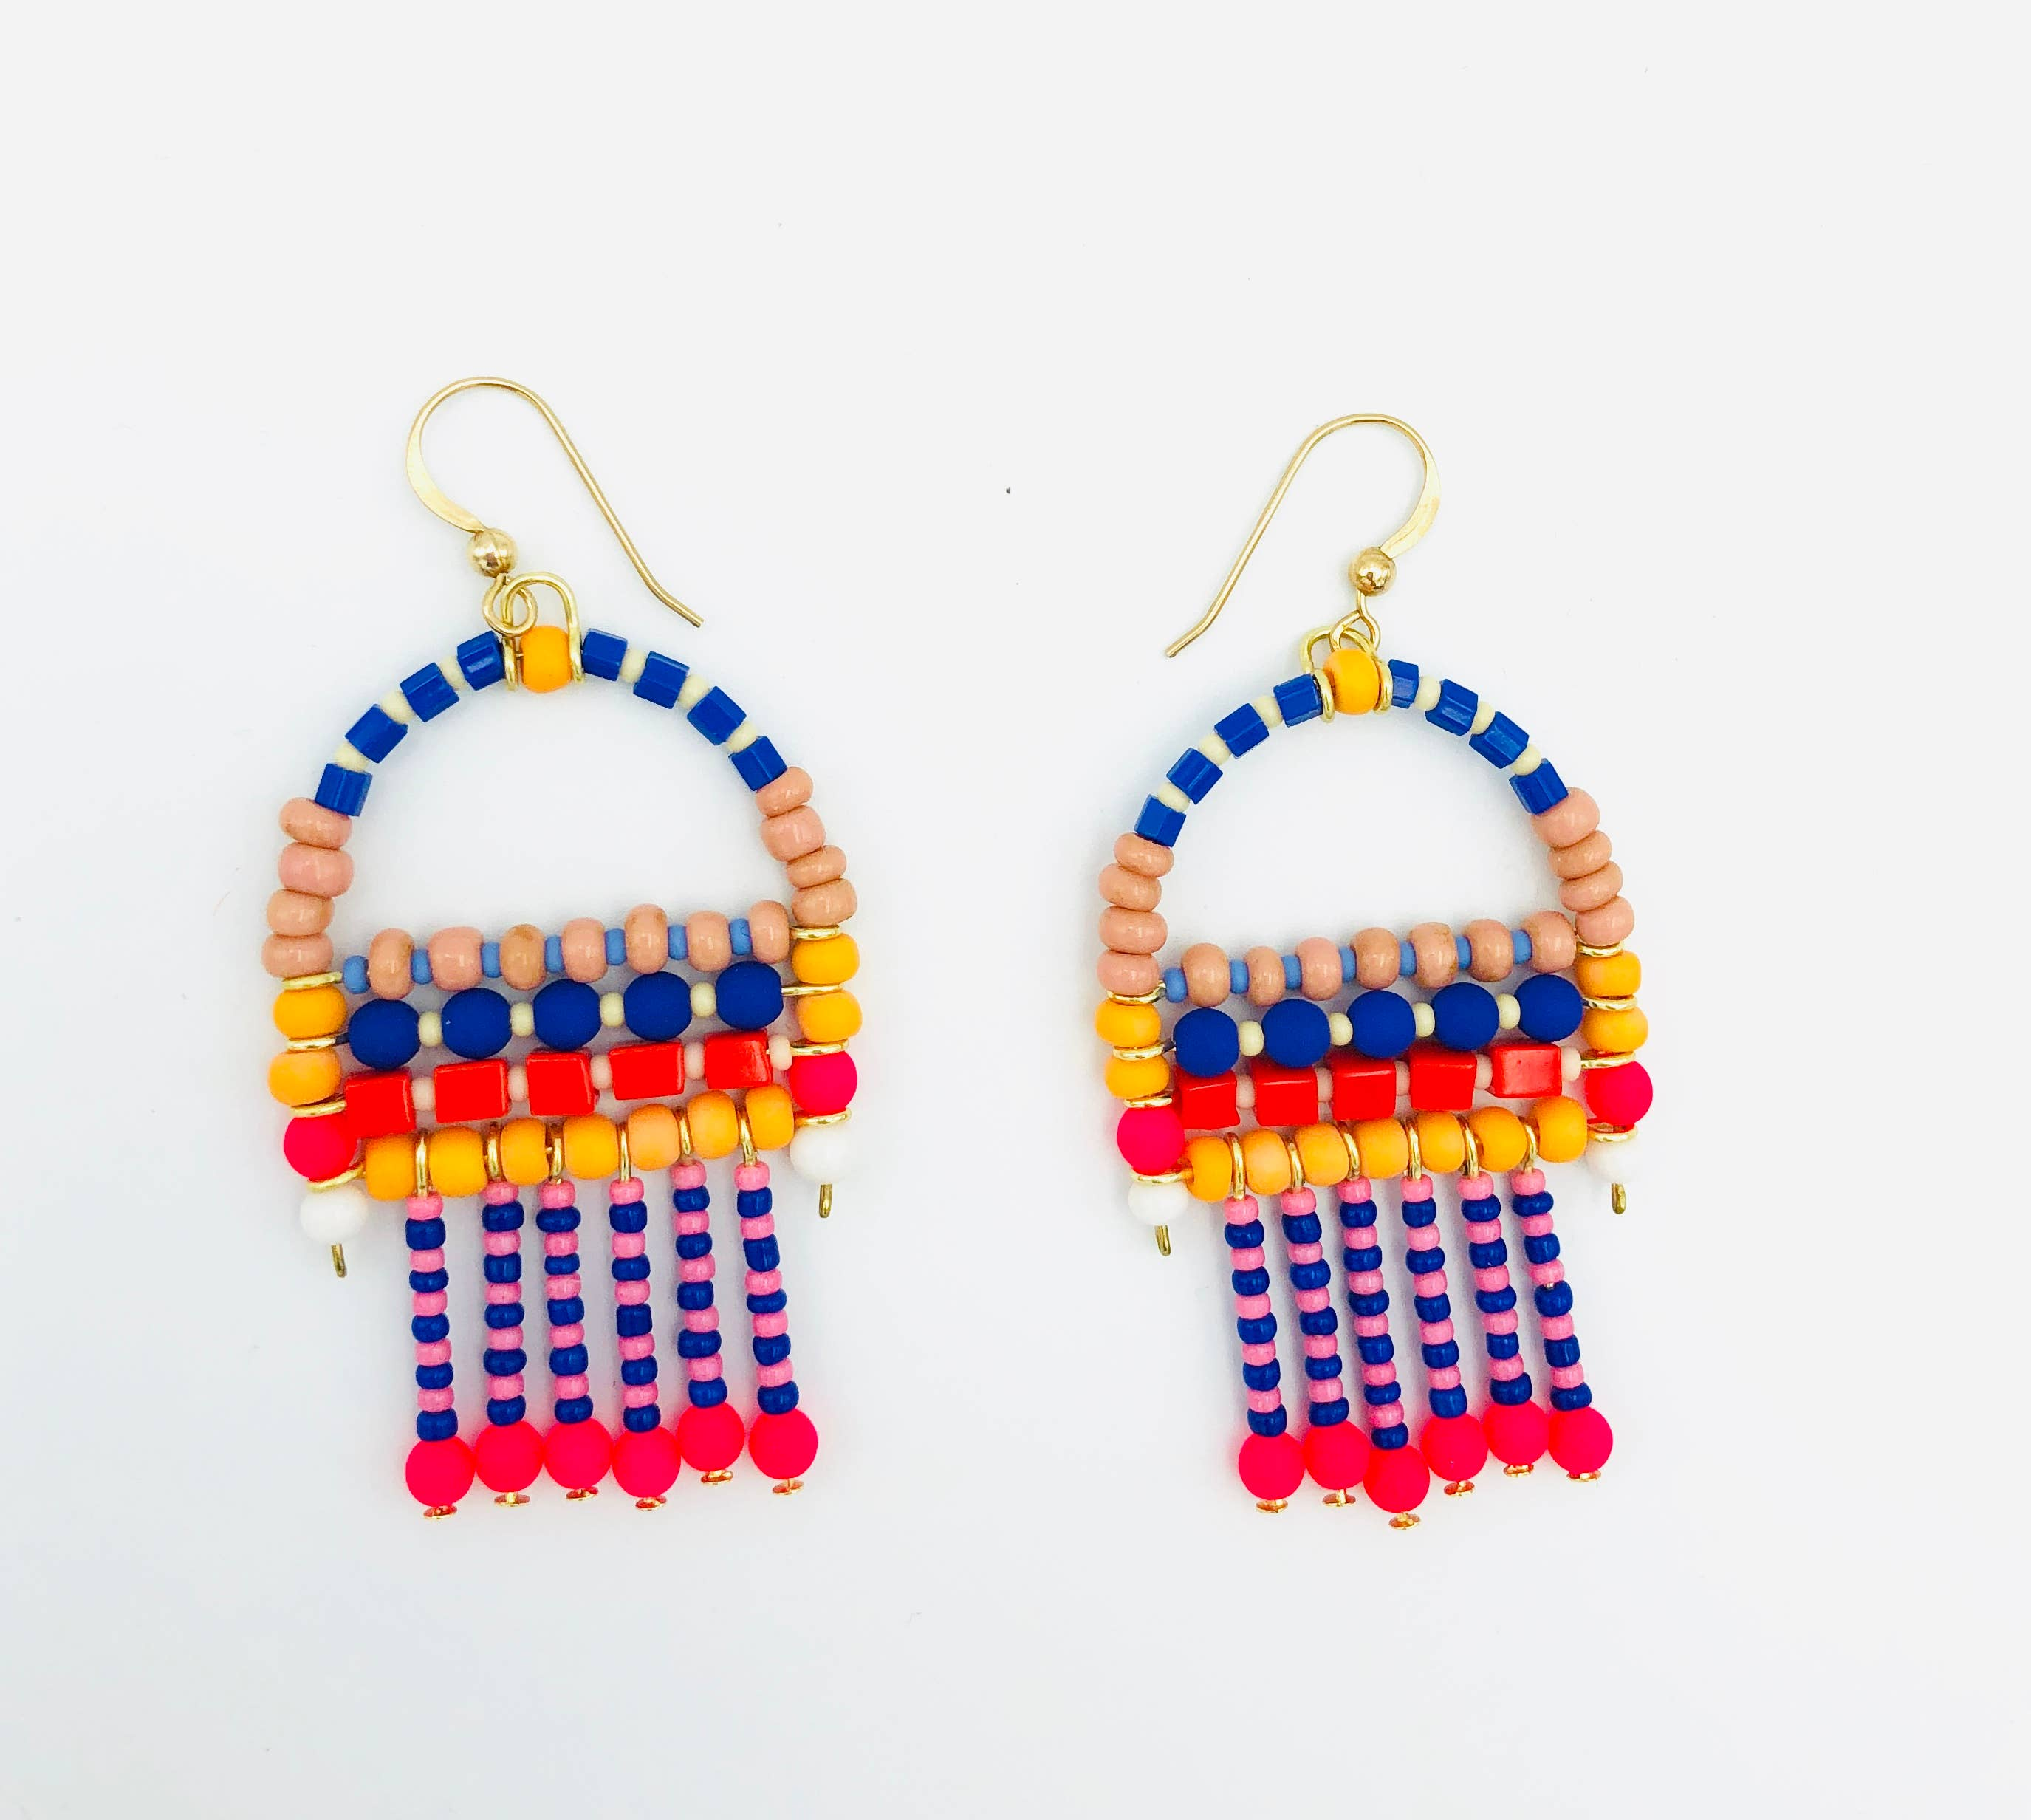 Paradise Brightly Beaded Earrings, Erica Kane Fink, Handcrafted Home Goods and Gifts